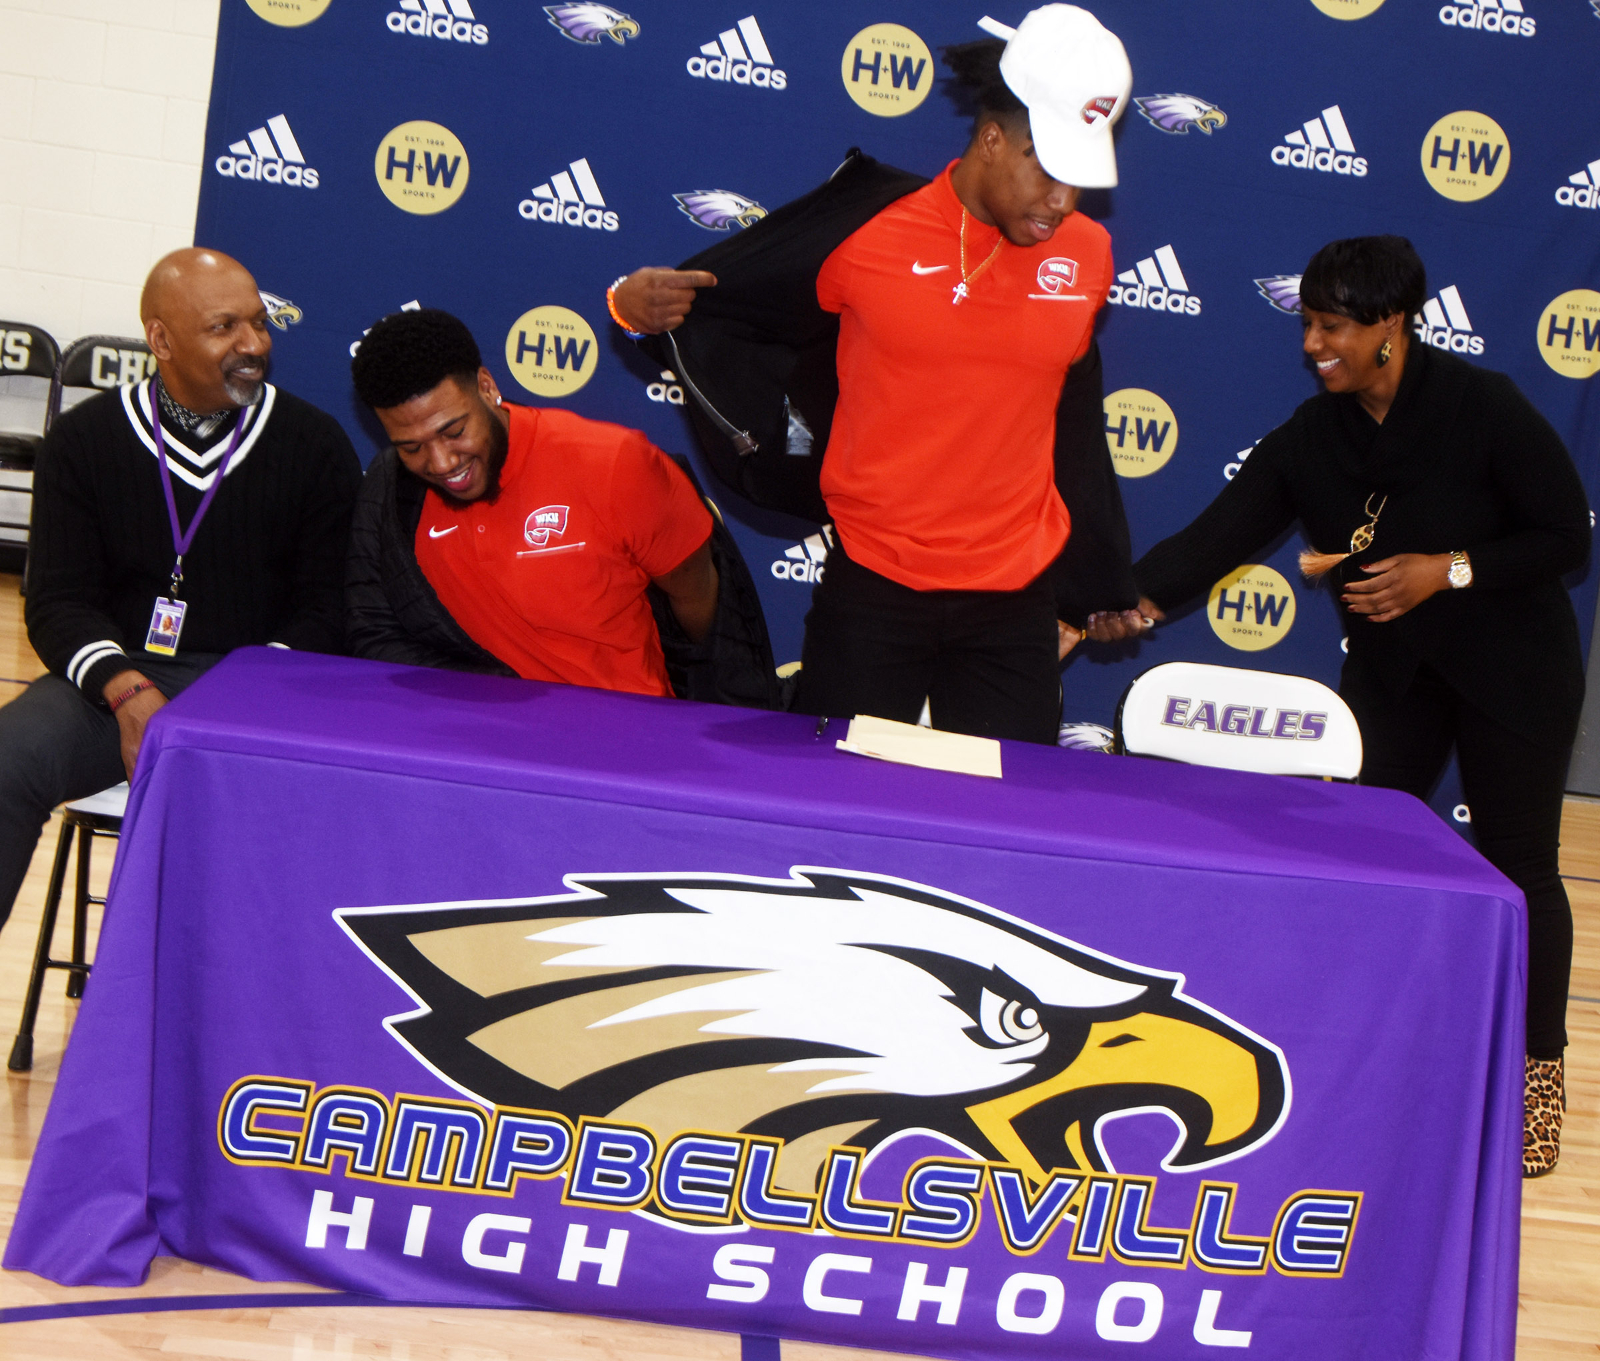 CHS senior to continue football career at WKU